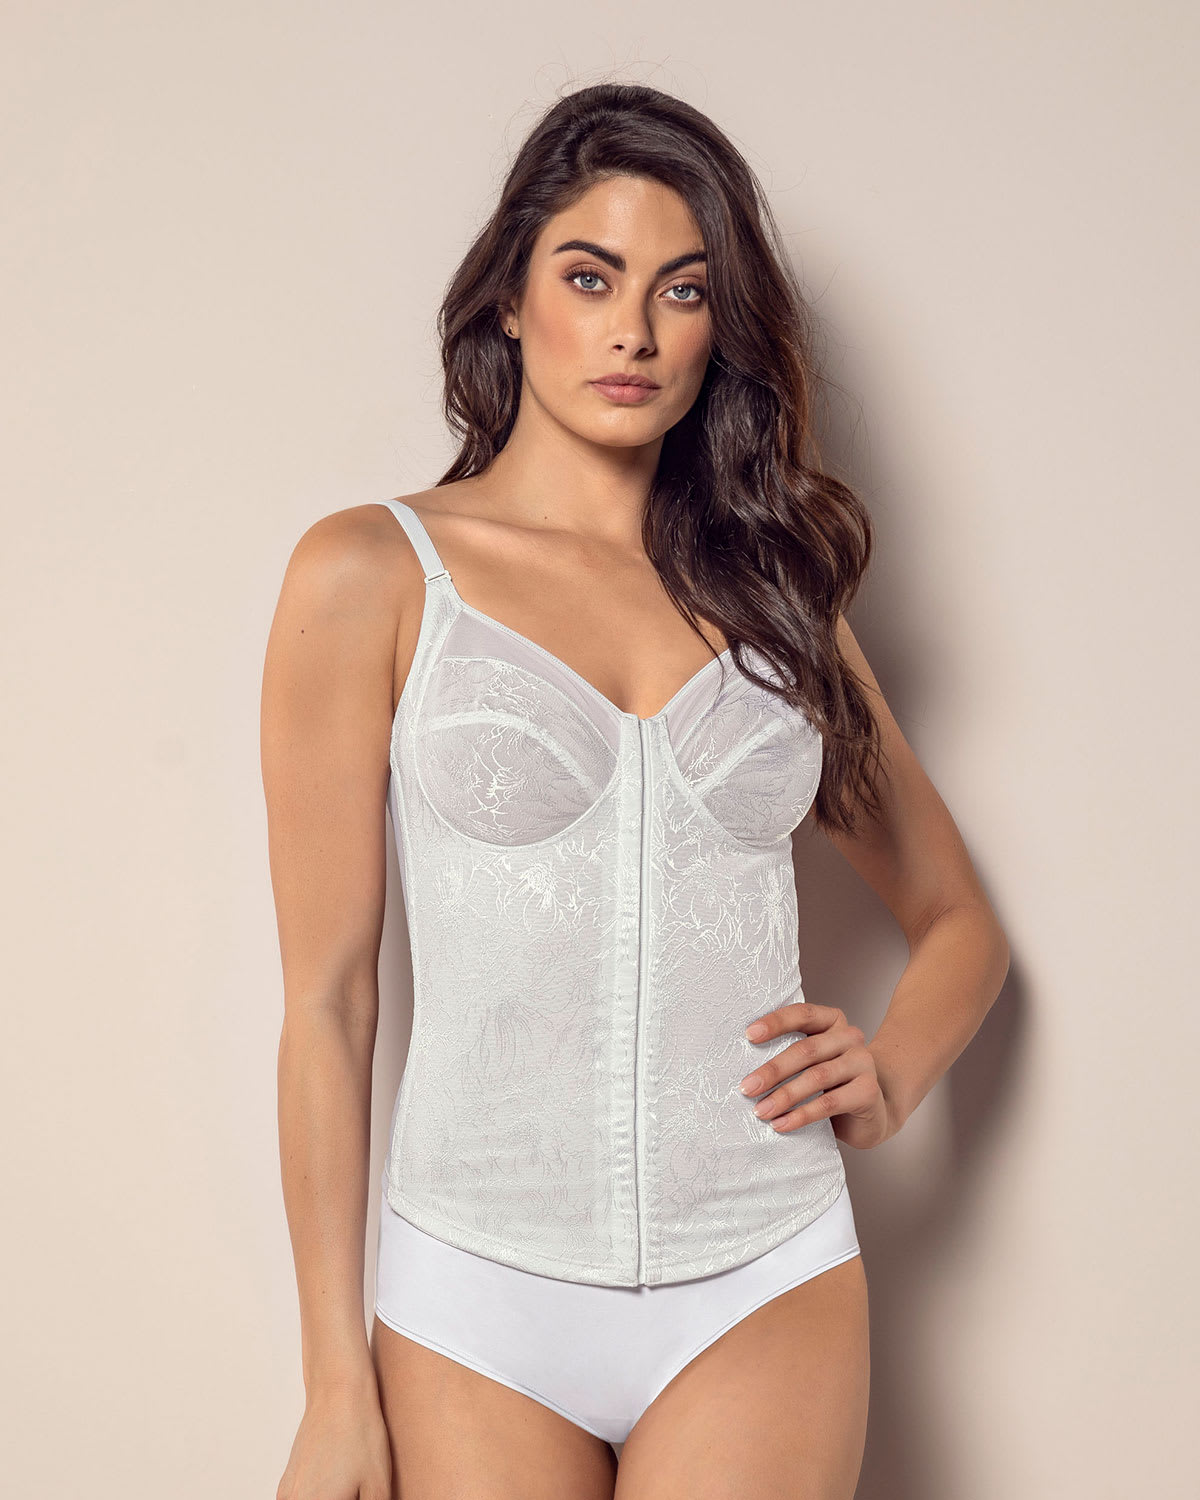 Moderate Shaping Corset + Built-In Bra